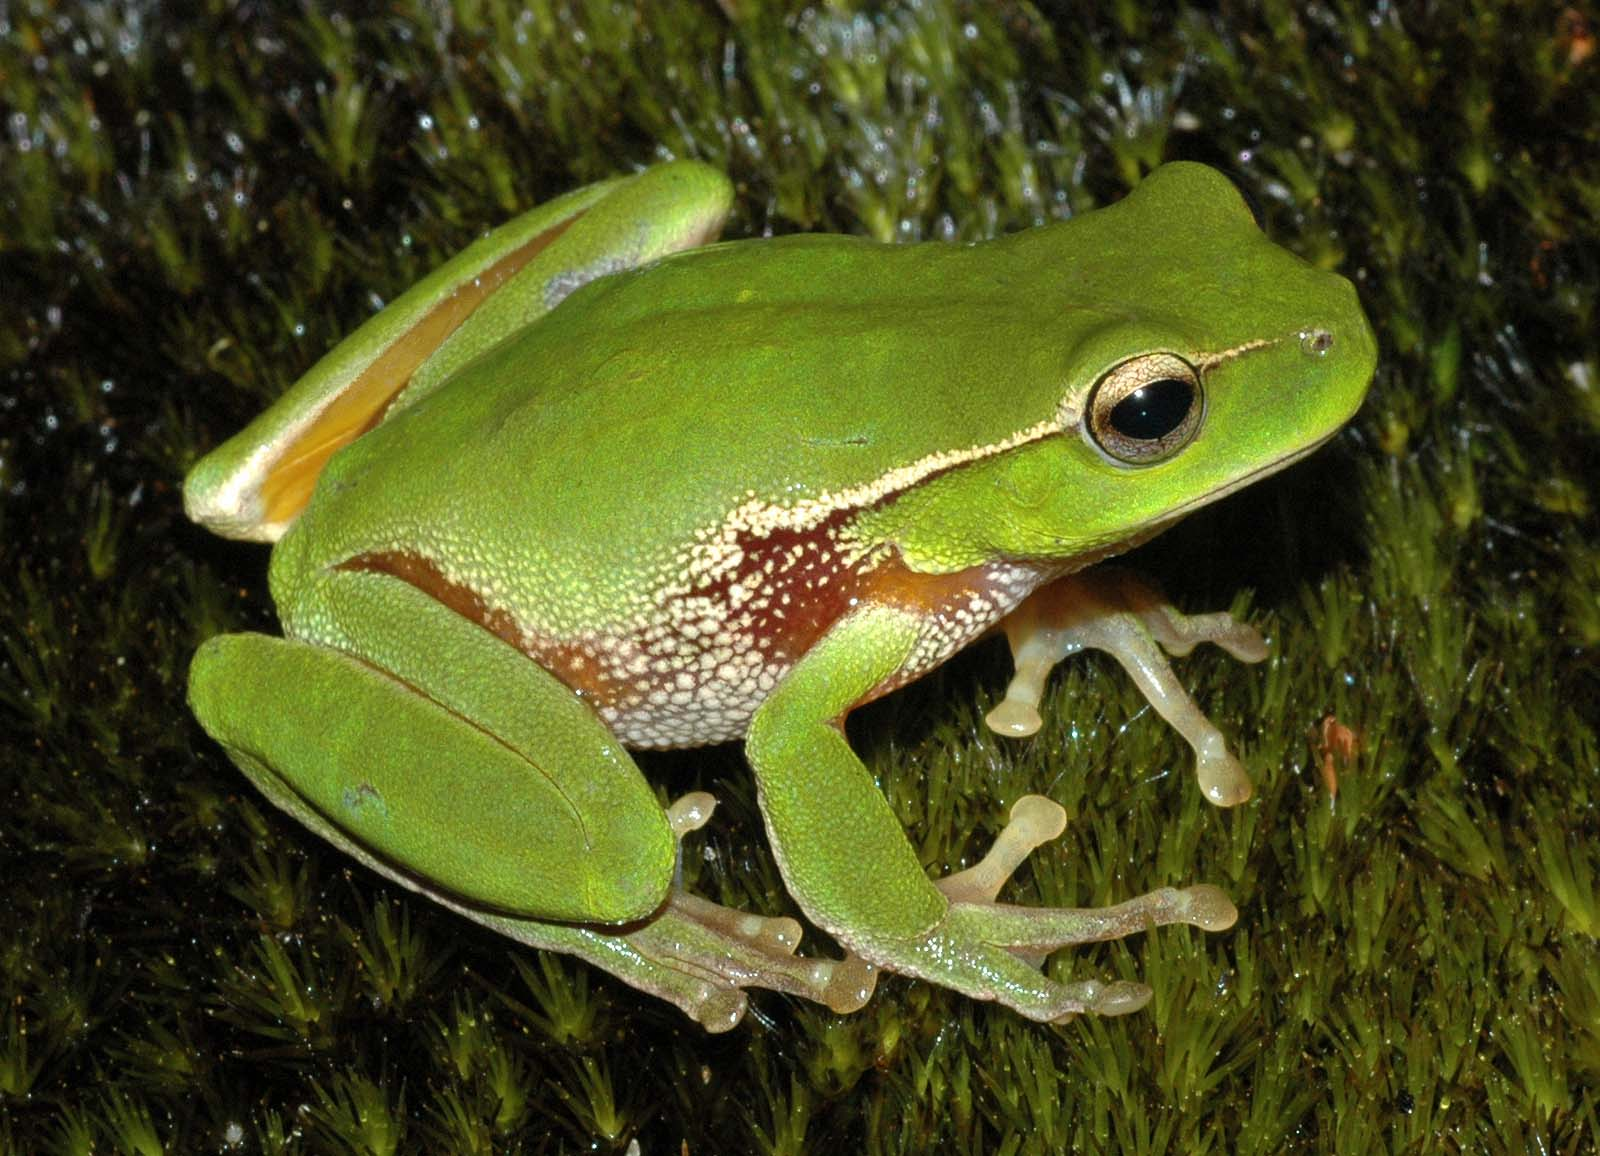 Frogs are amphibians, which comes from the Greek language and means